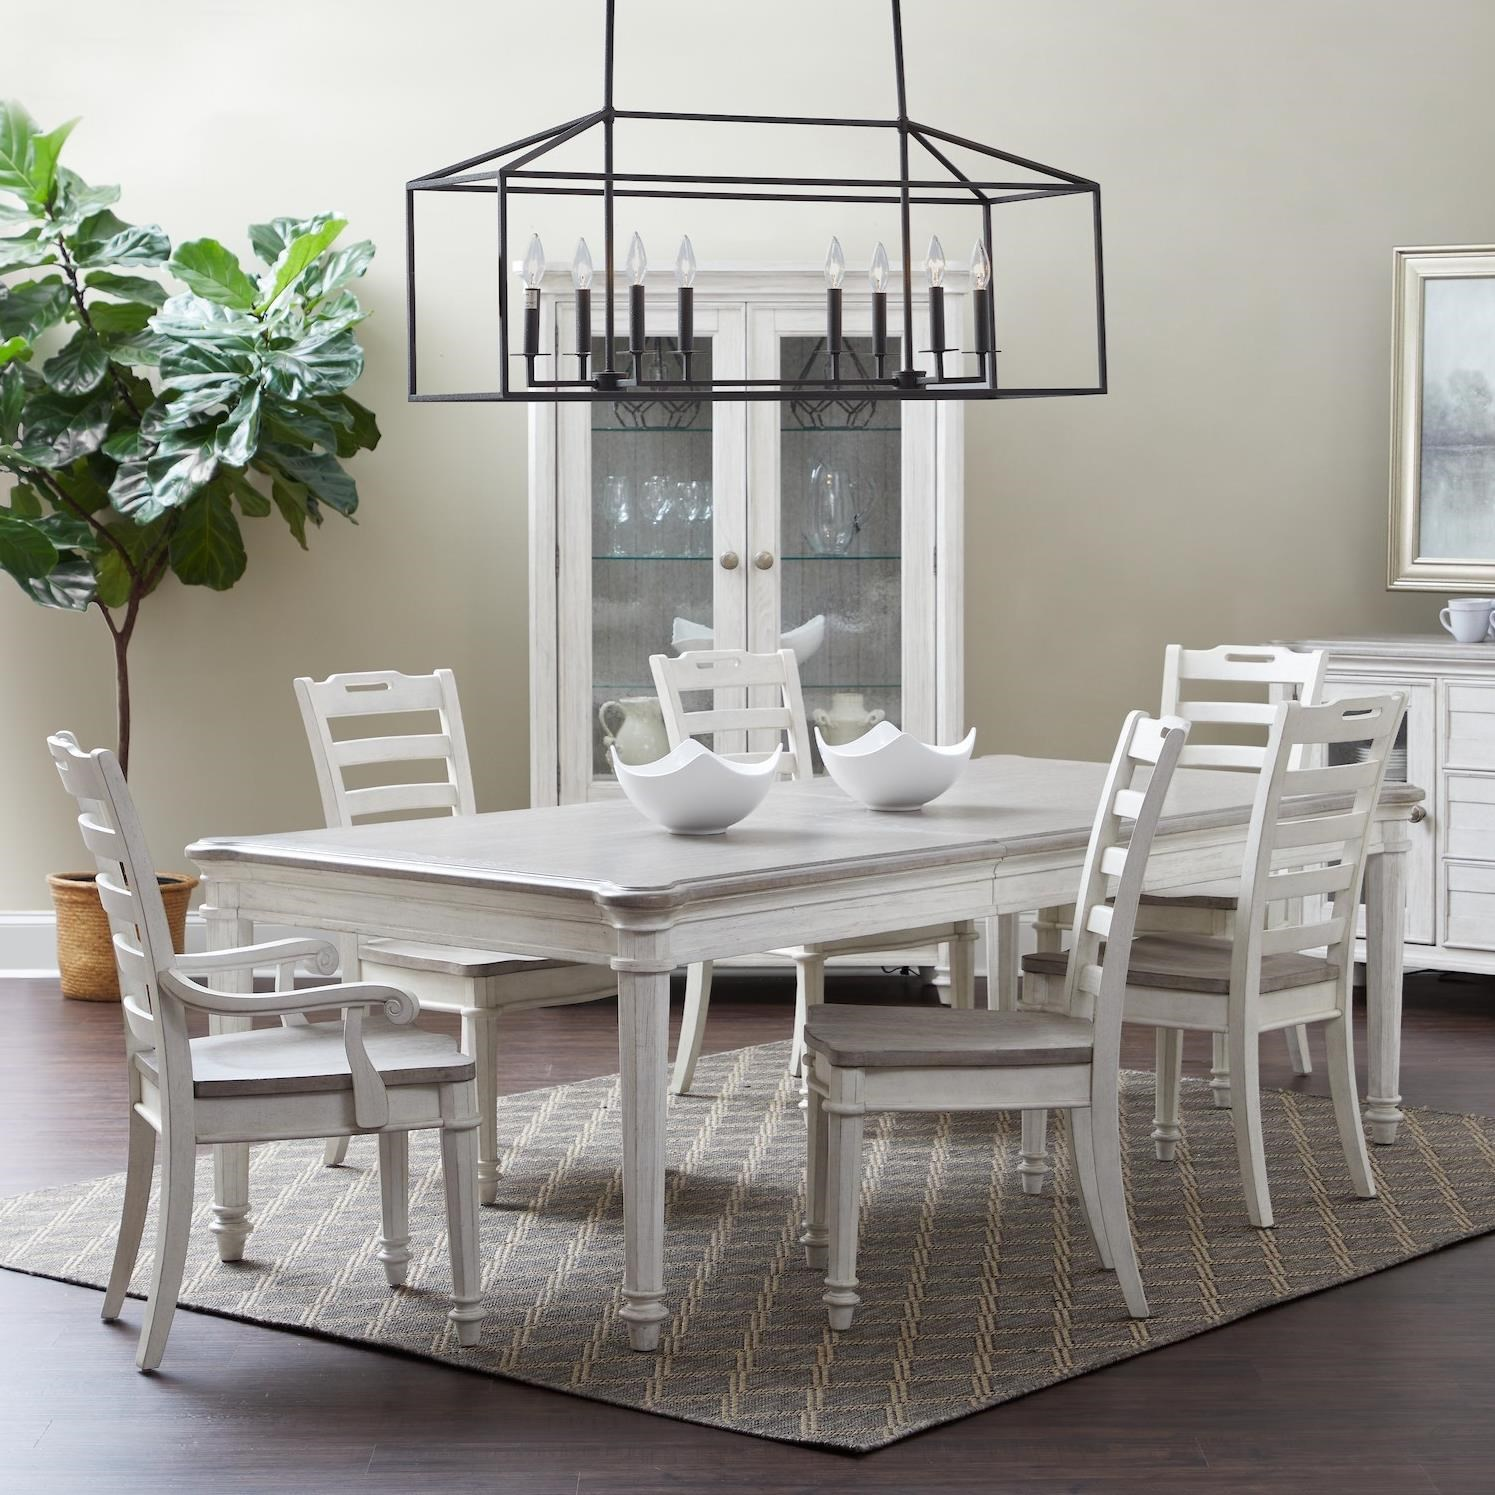 Maribelle 7-Piece Dining Set by Klaussner International at Northeast Factory Direct